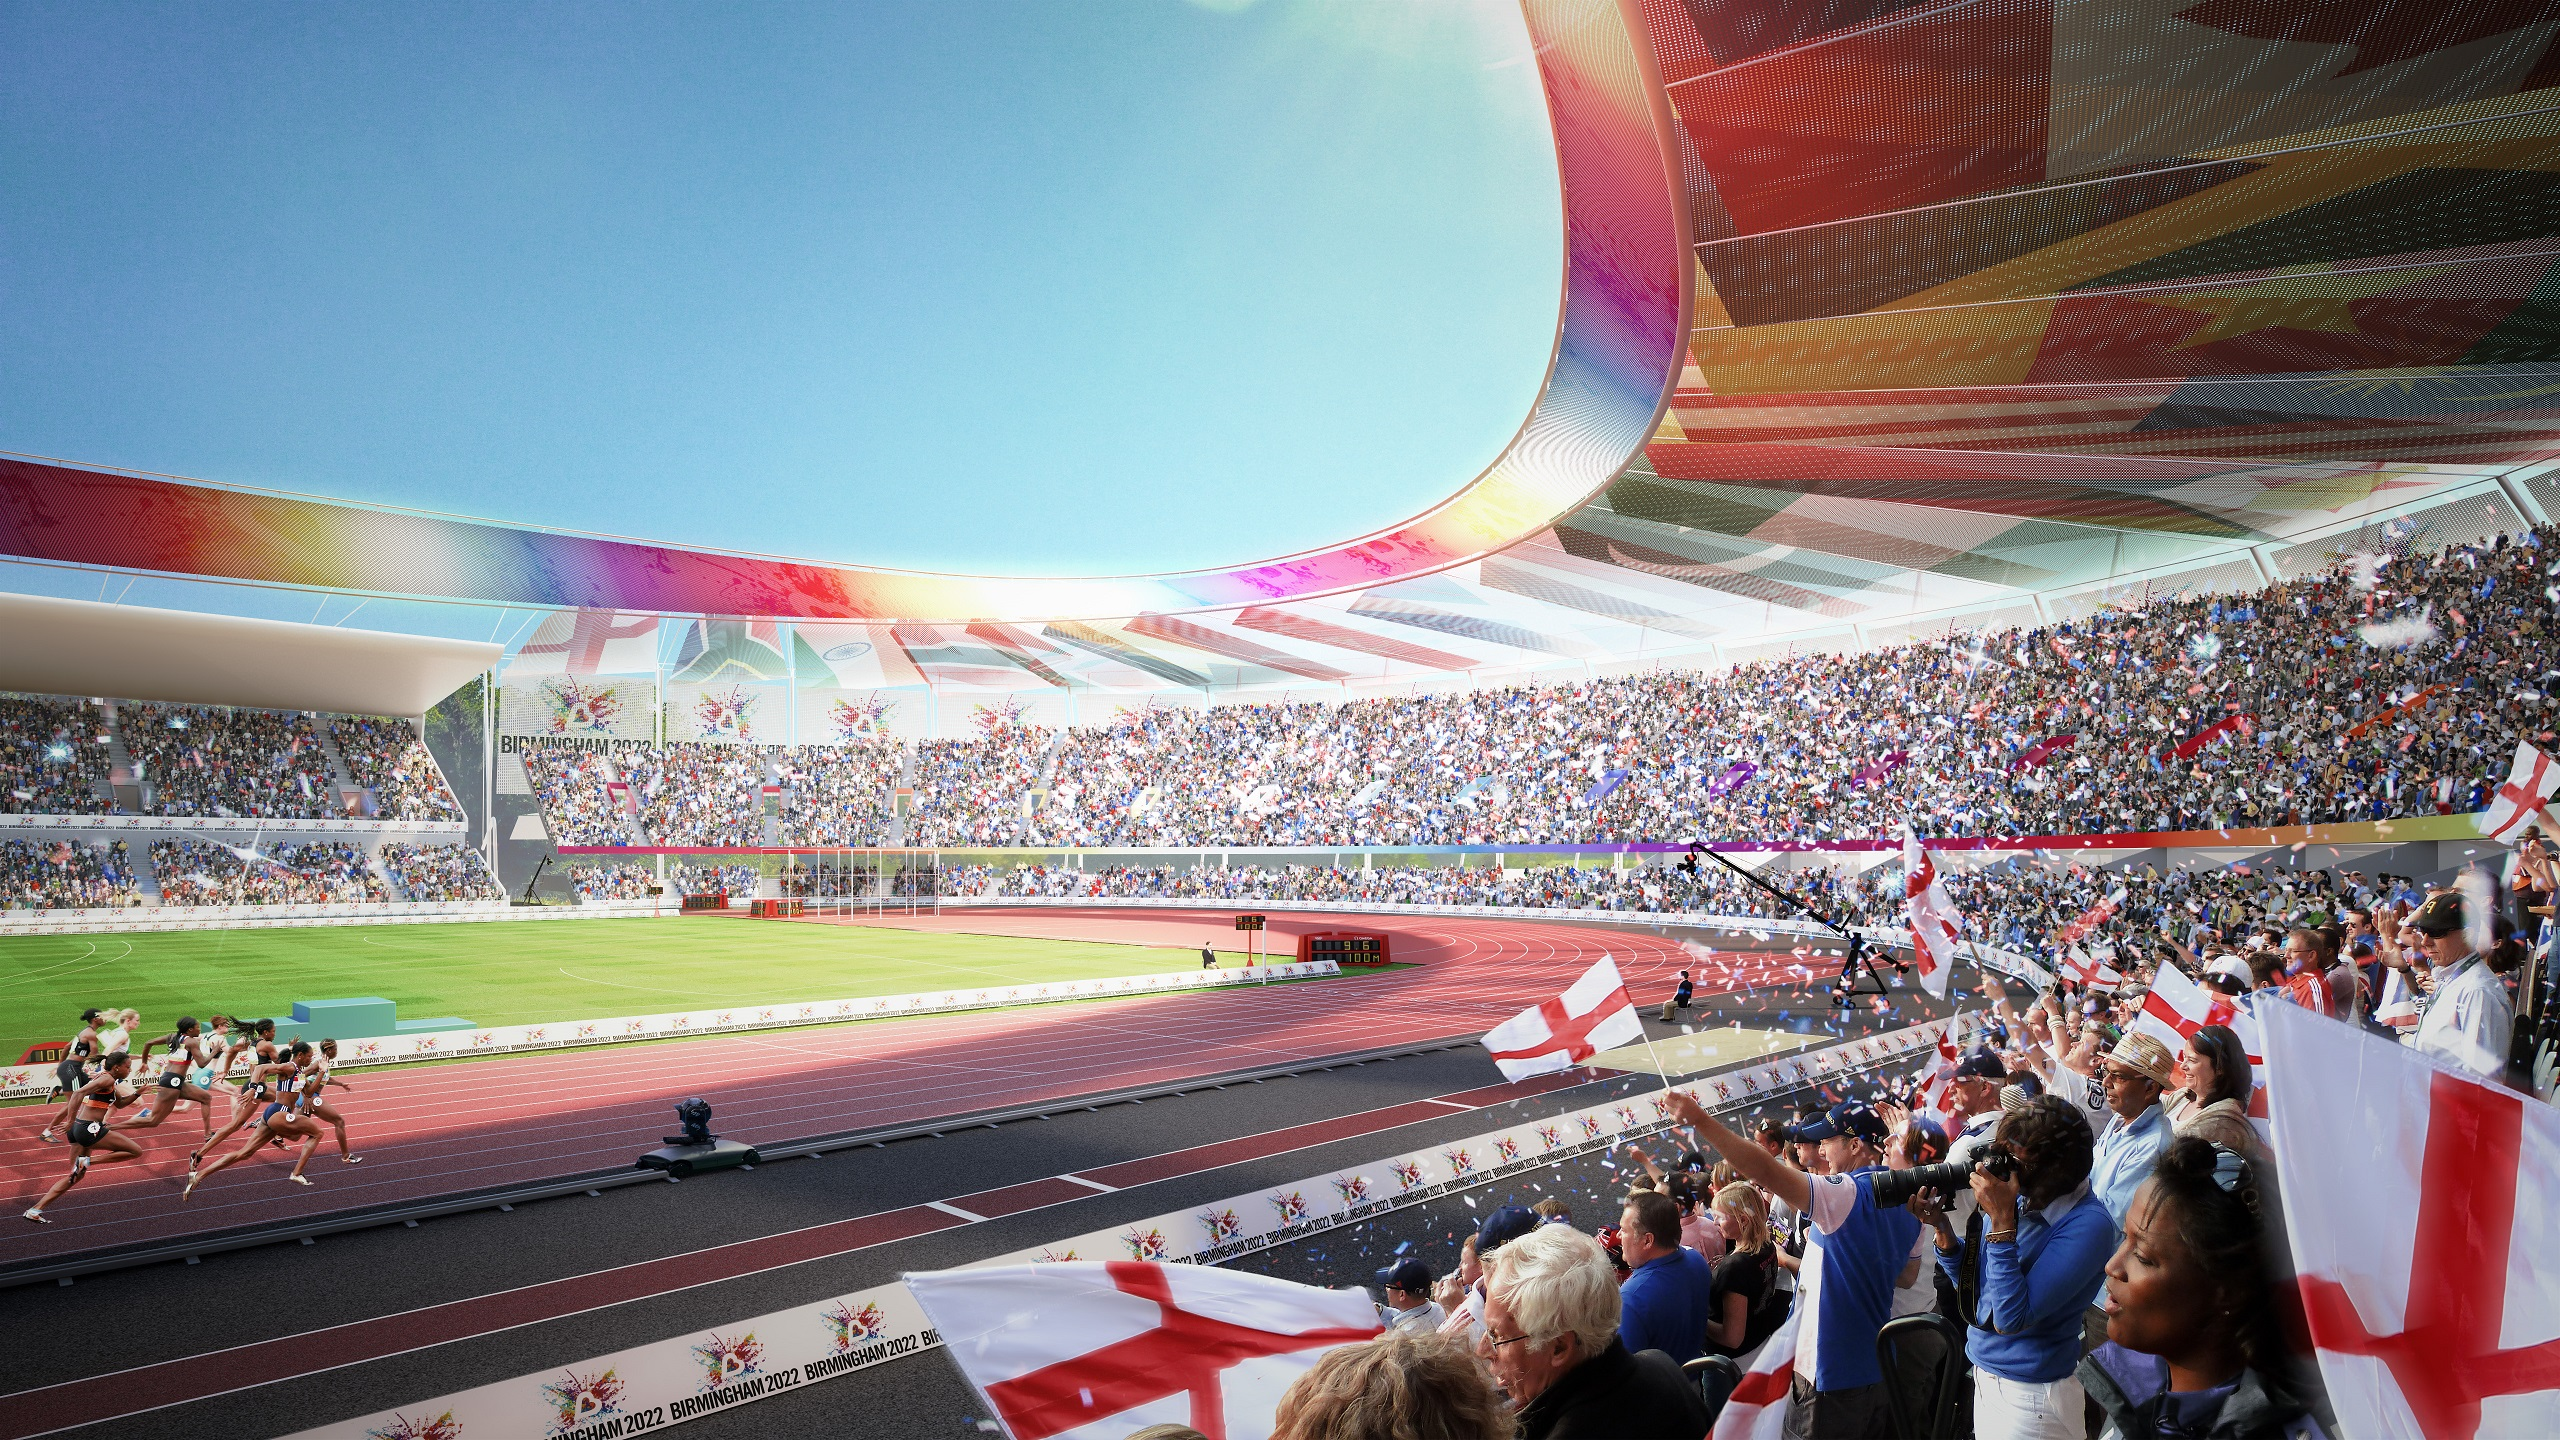 The Commonwealth Games Federation has selected Birmingham as Host City Partner of the 2022 Commonwealth Games